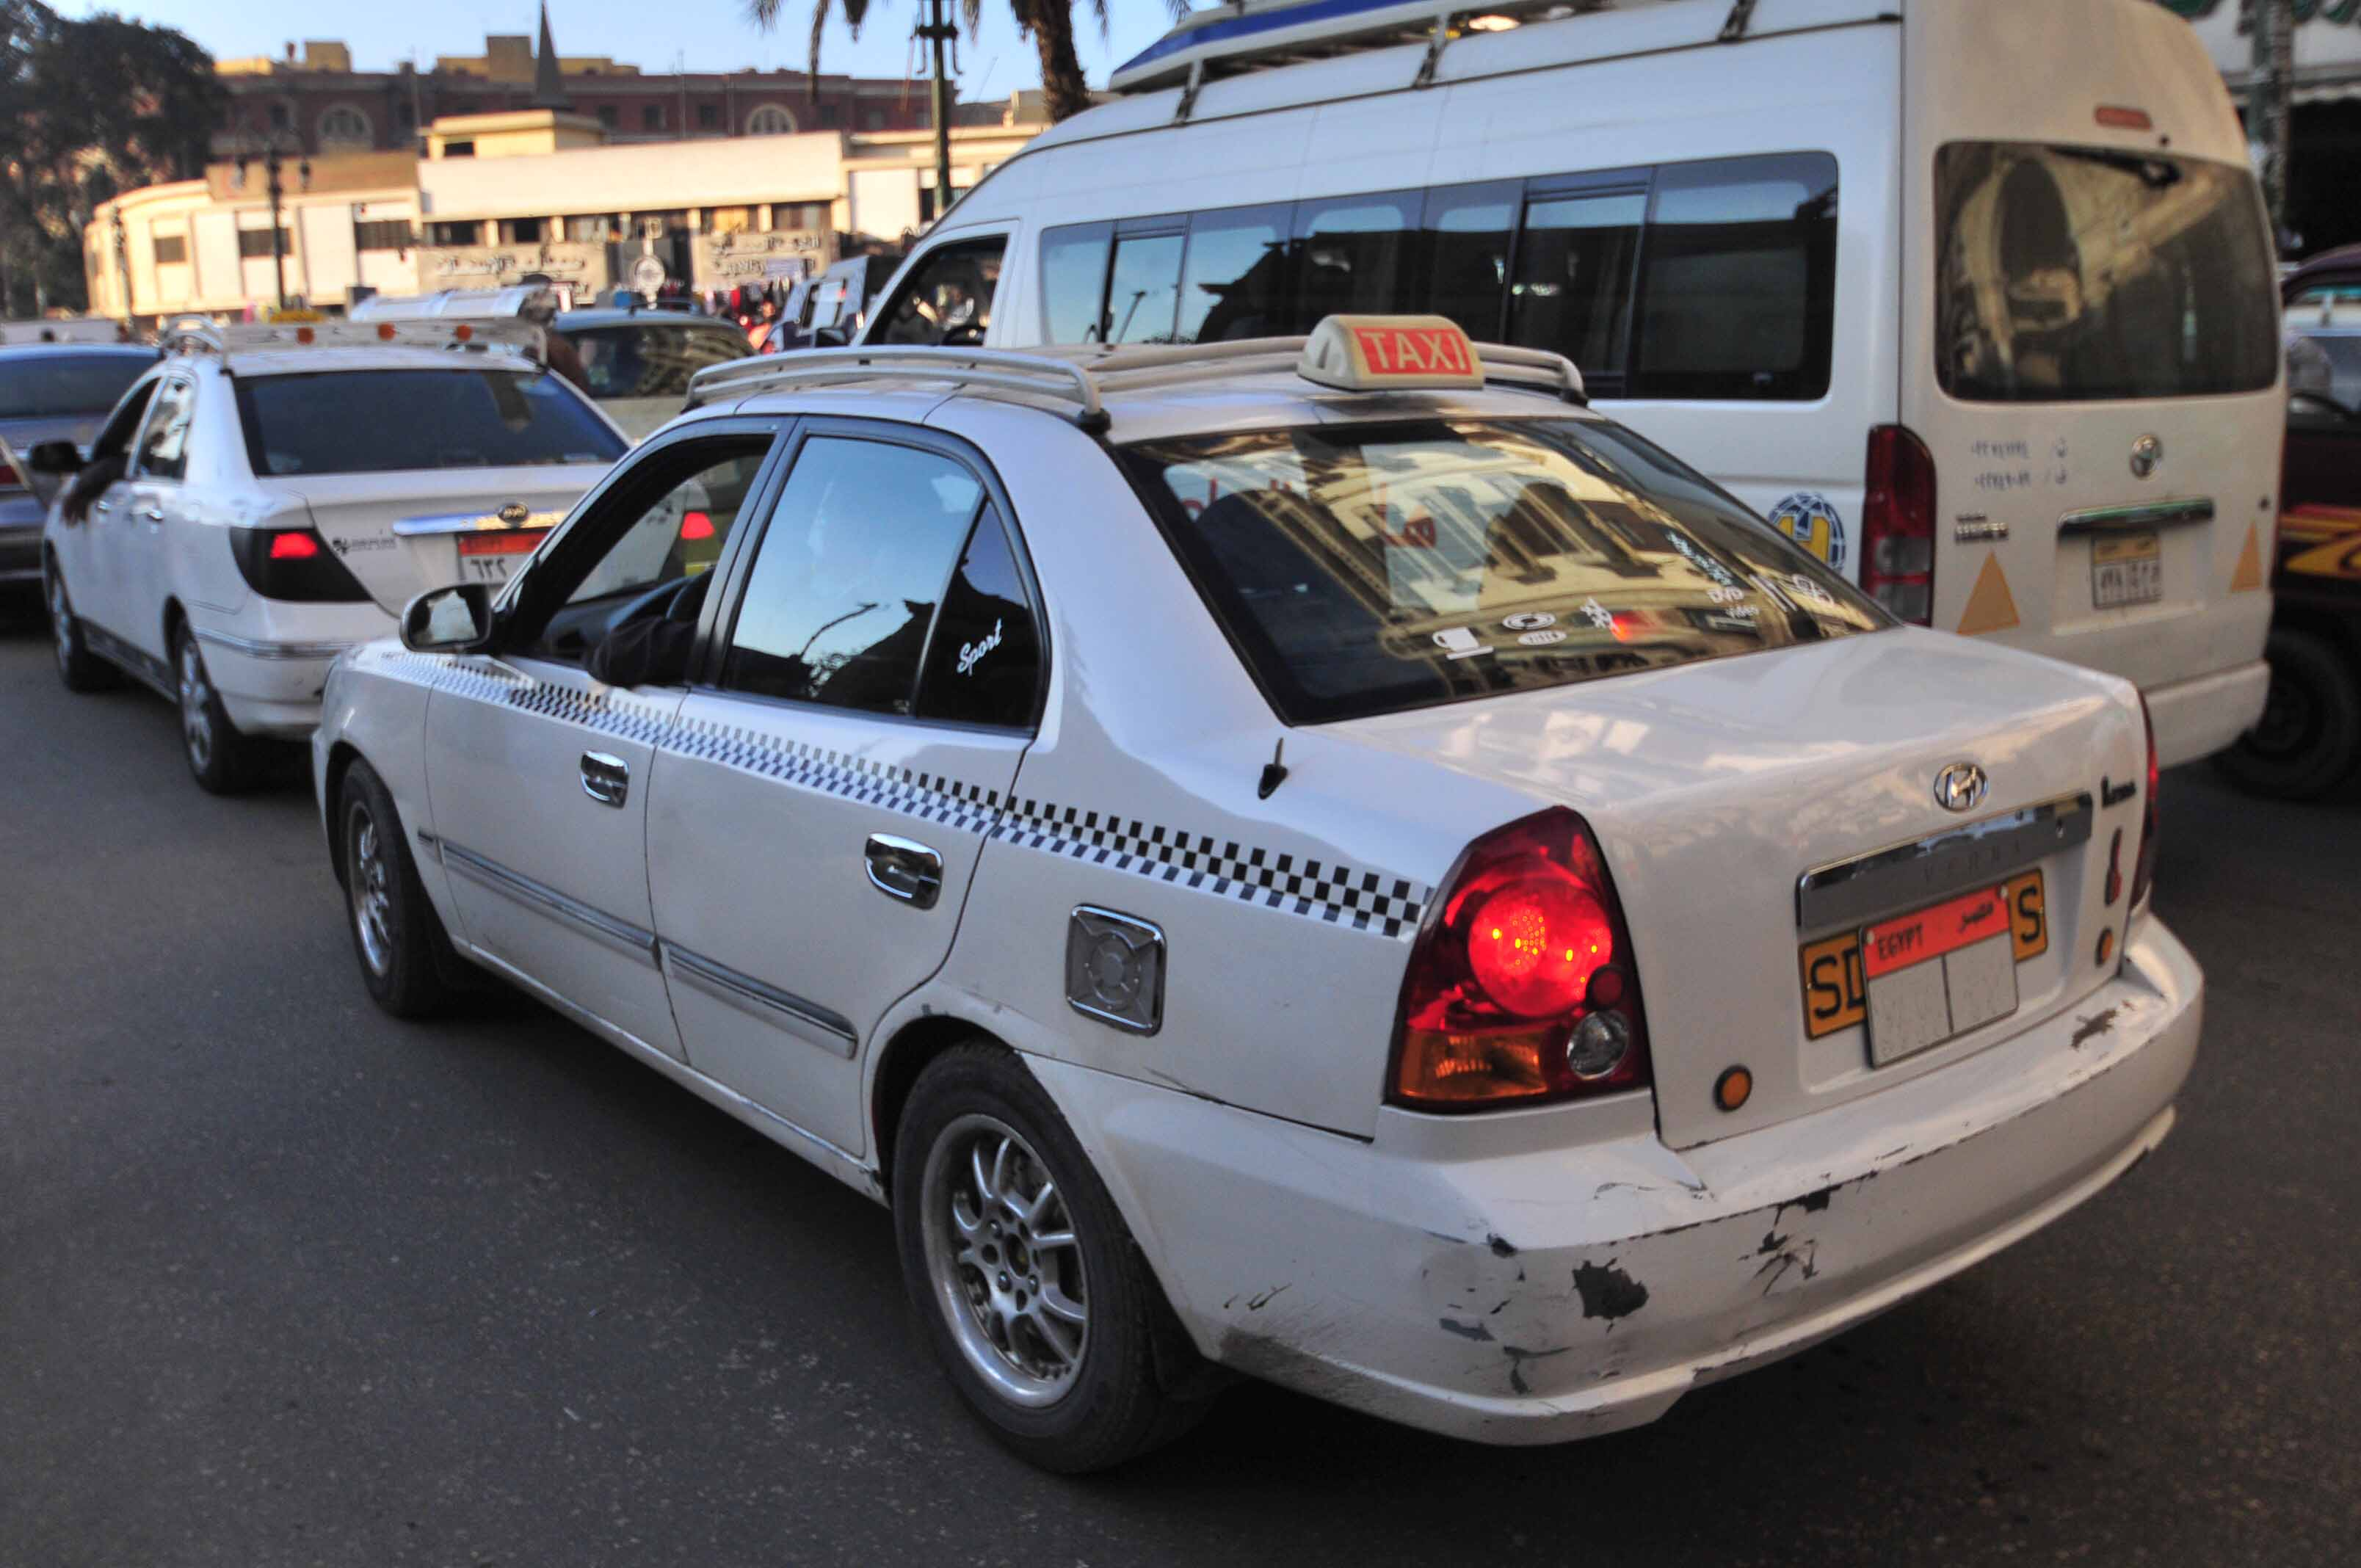 The white cab, introduced to the streets of Cairo after 2009. (DNE/ Hassan Ibrahim)